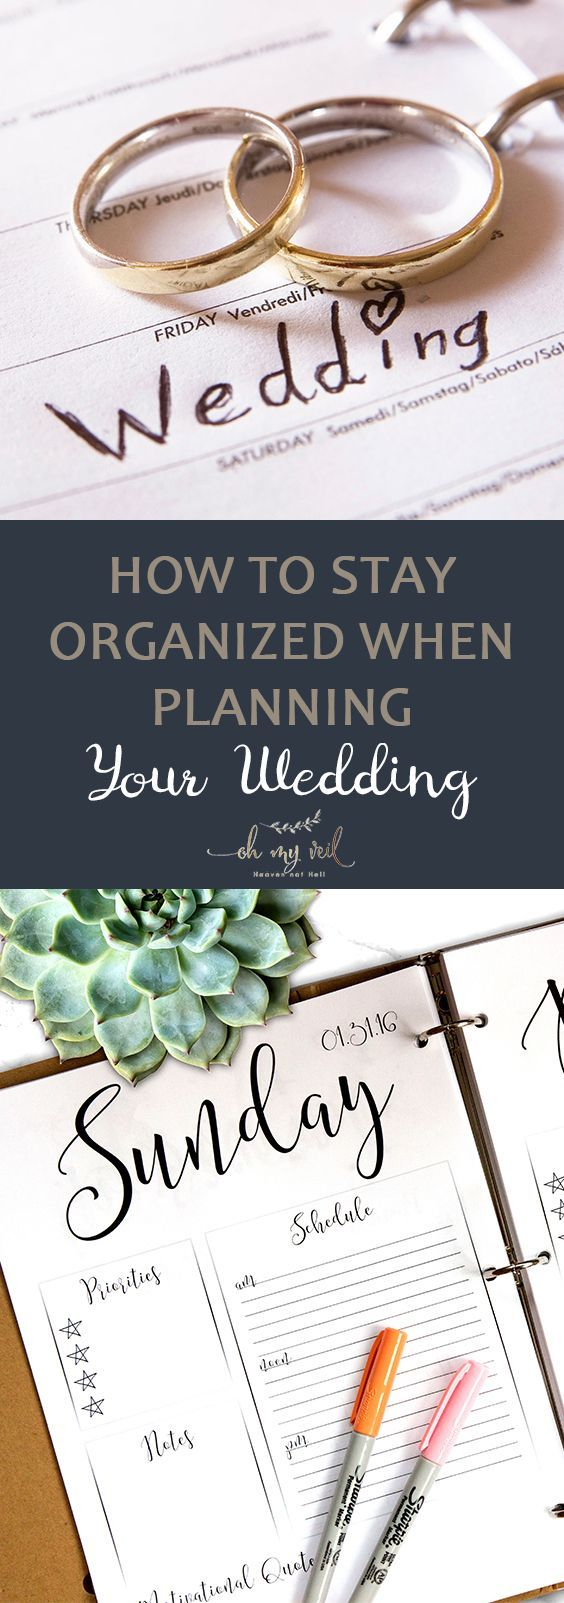 How to Stay Organized Planning Your Wedding